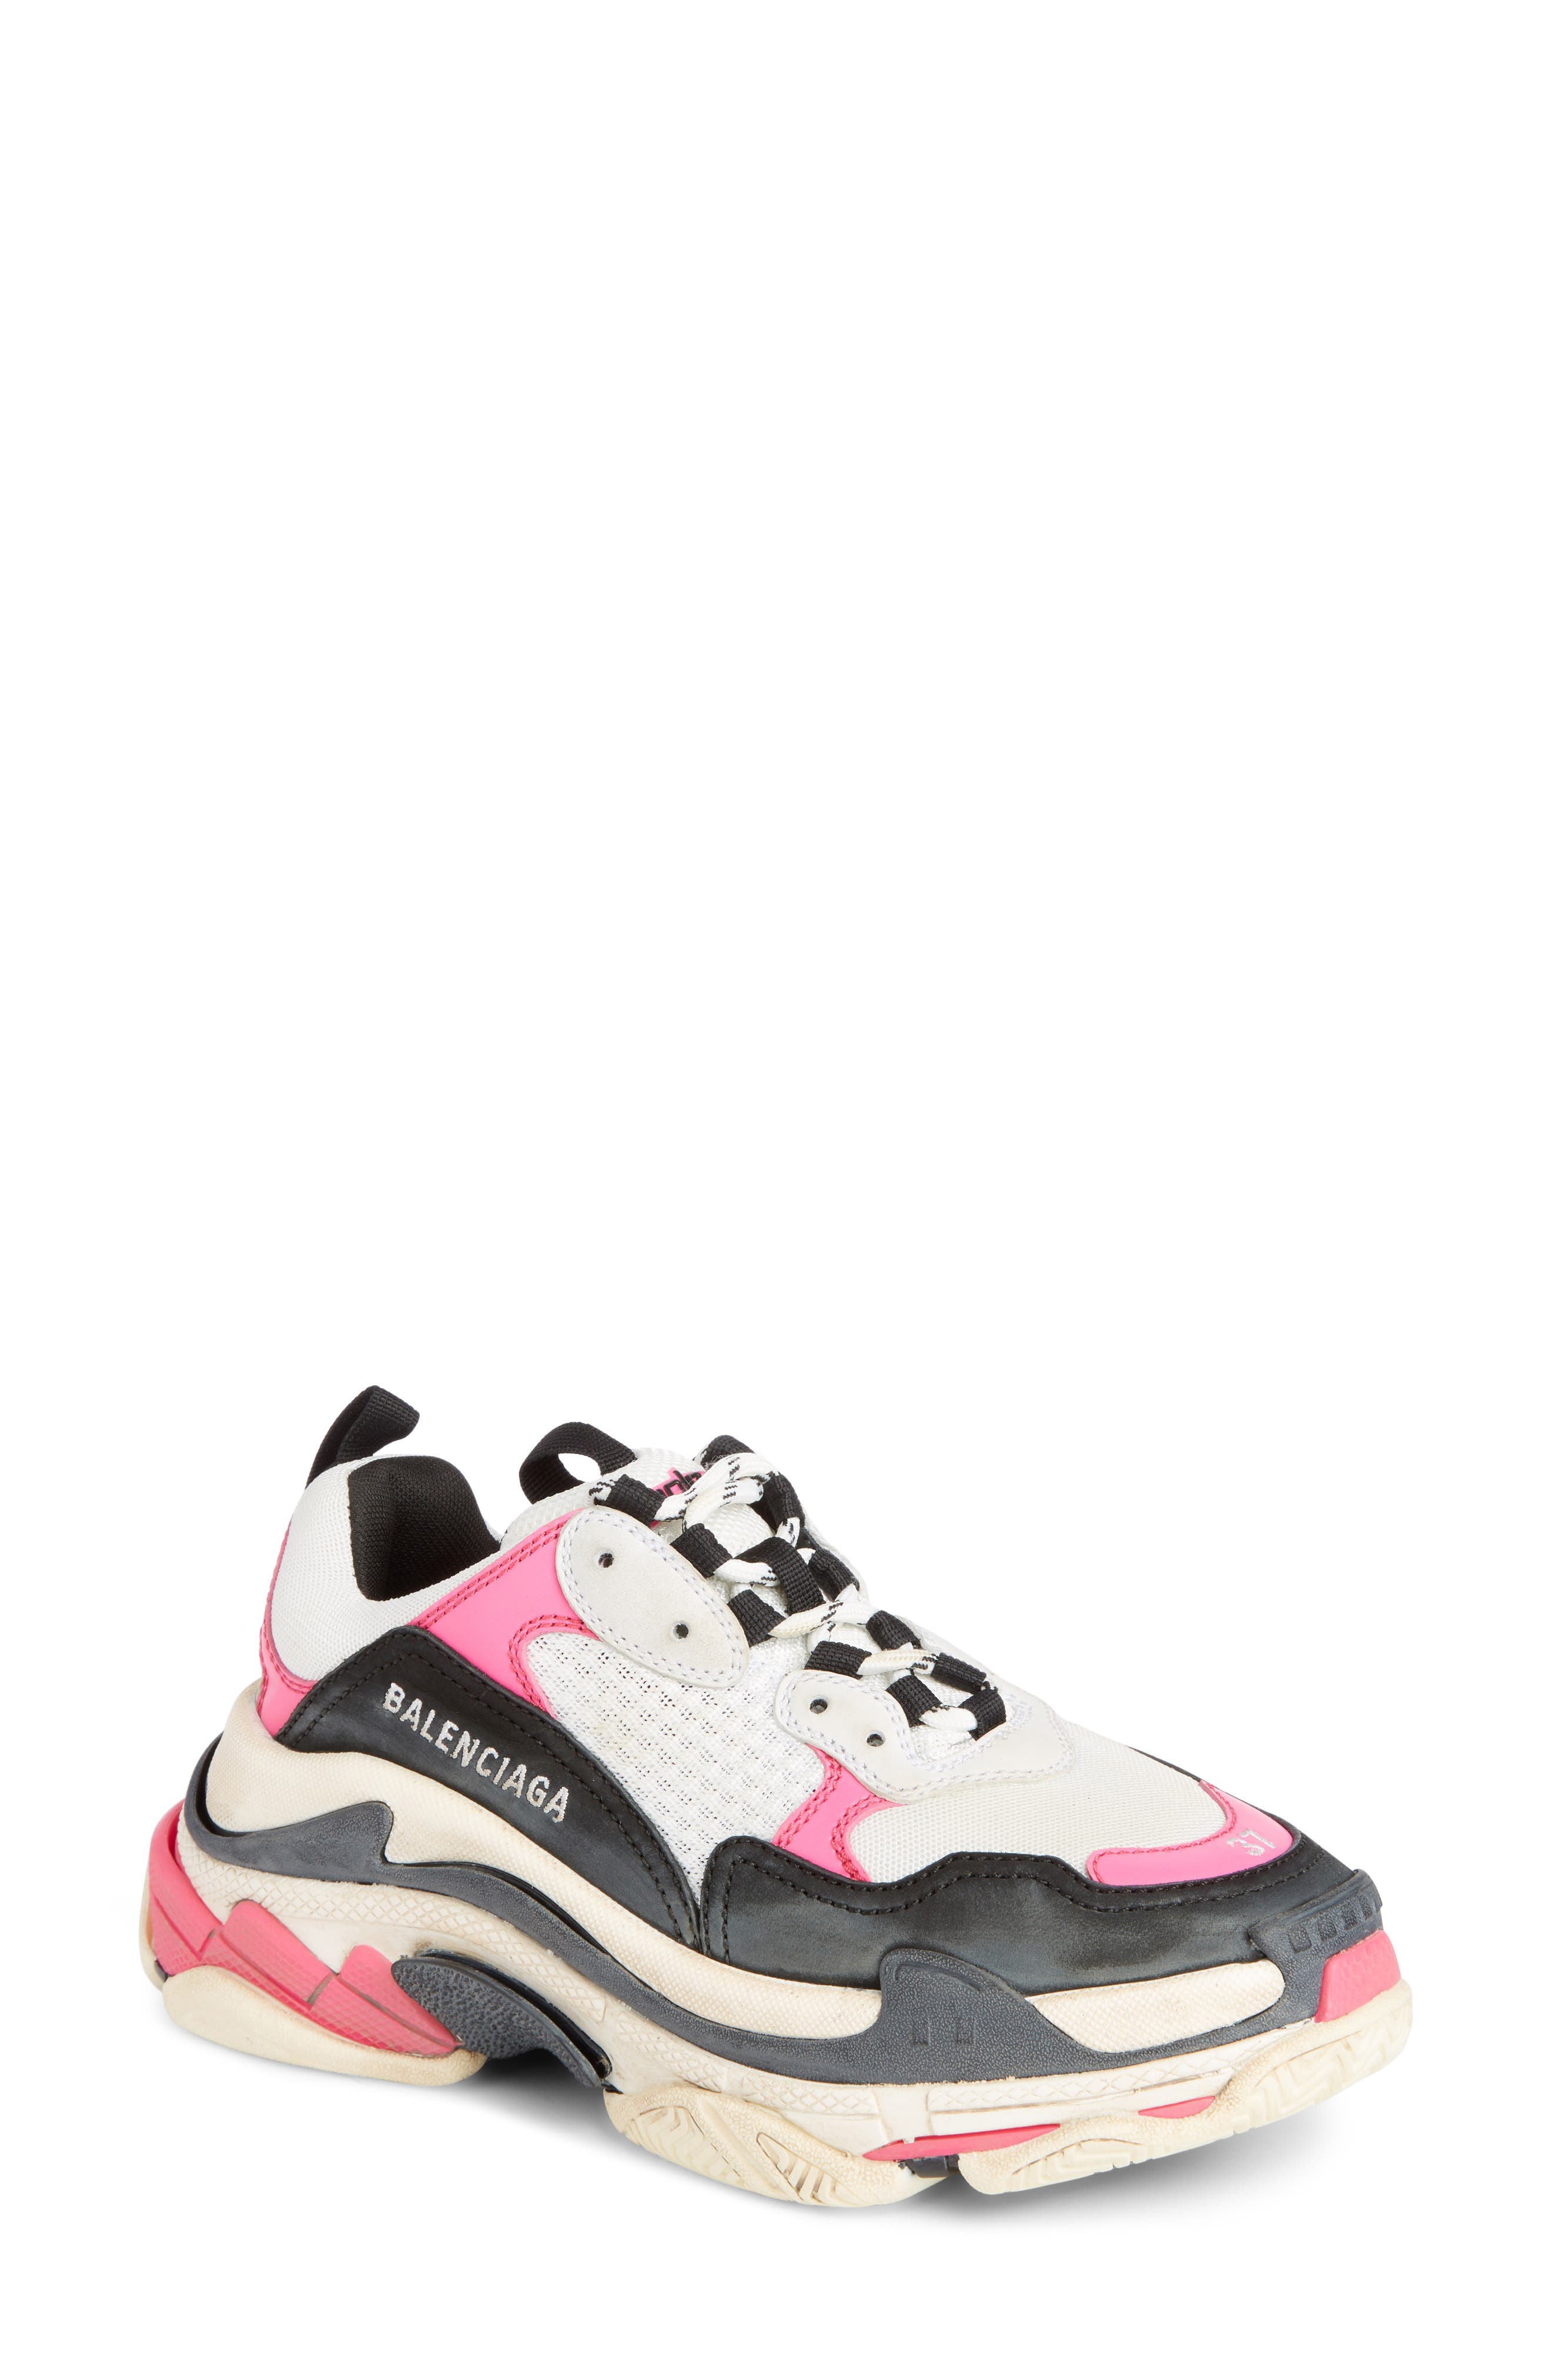 Triple S Low Top Sneaker,                             Main thumbnail 1, color,                             ROSE FLUO/ BLACK/ WHITE